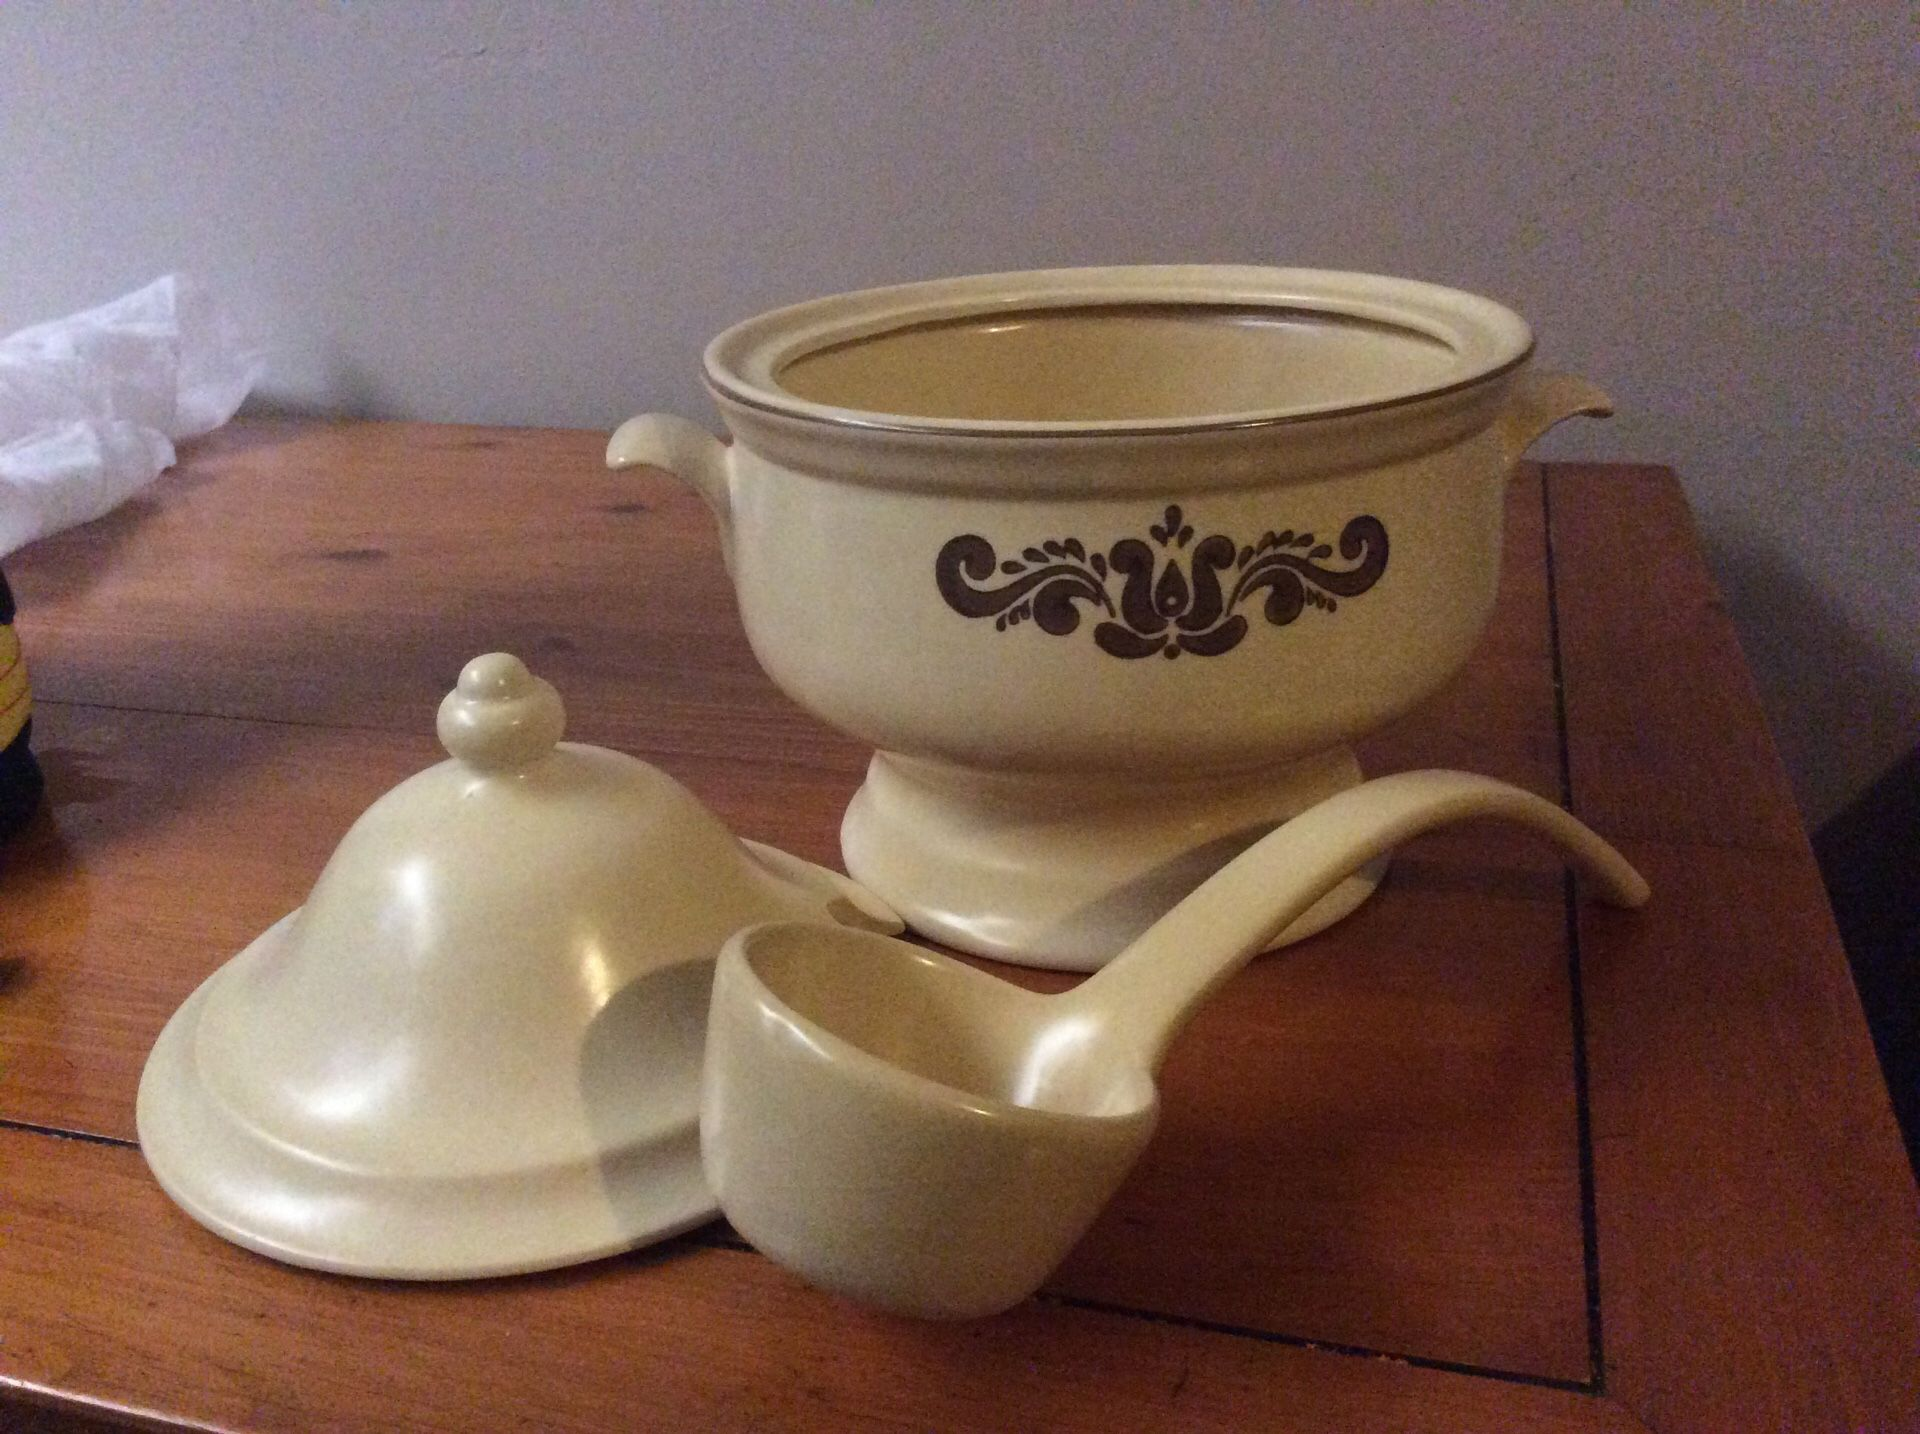 PFALTZGRAFF SOUP TAURINE WITH LADLE. Great condition.